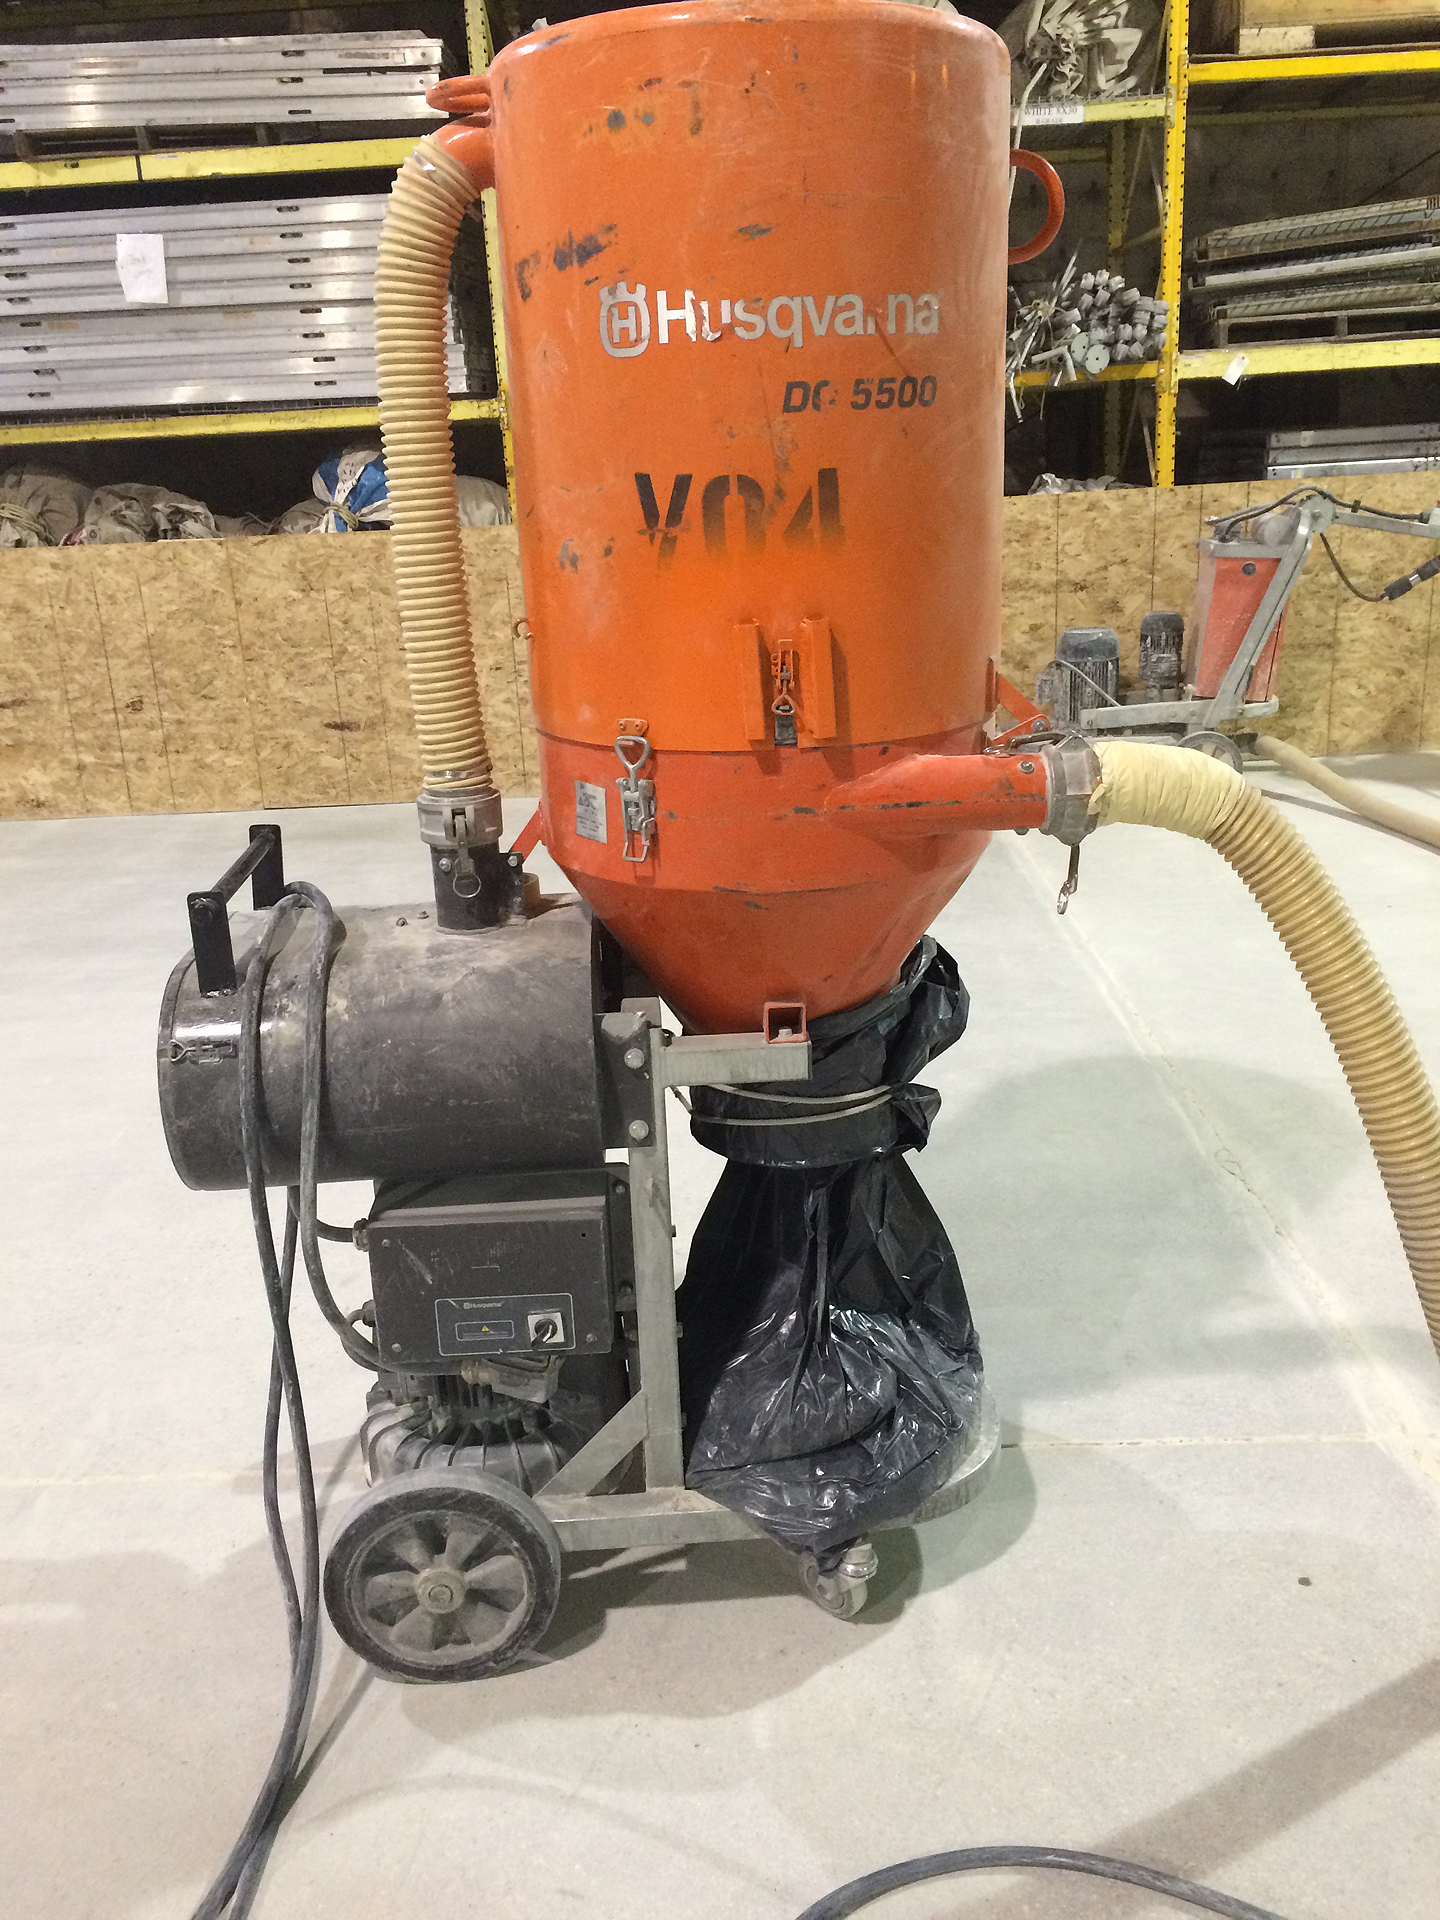 Husqvarna Ds 5500 480 Volts Dust Collection Vacuum Ia Il